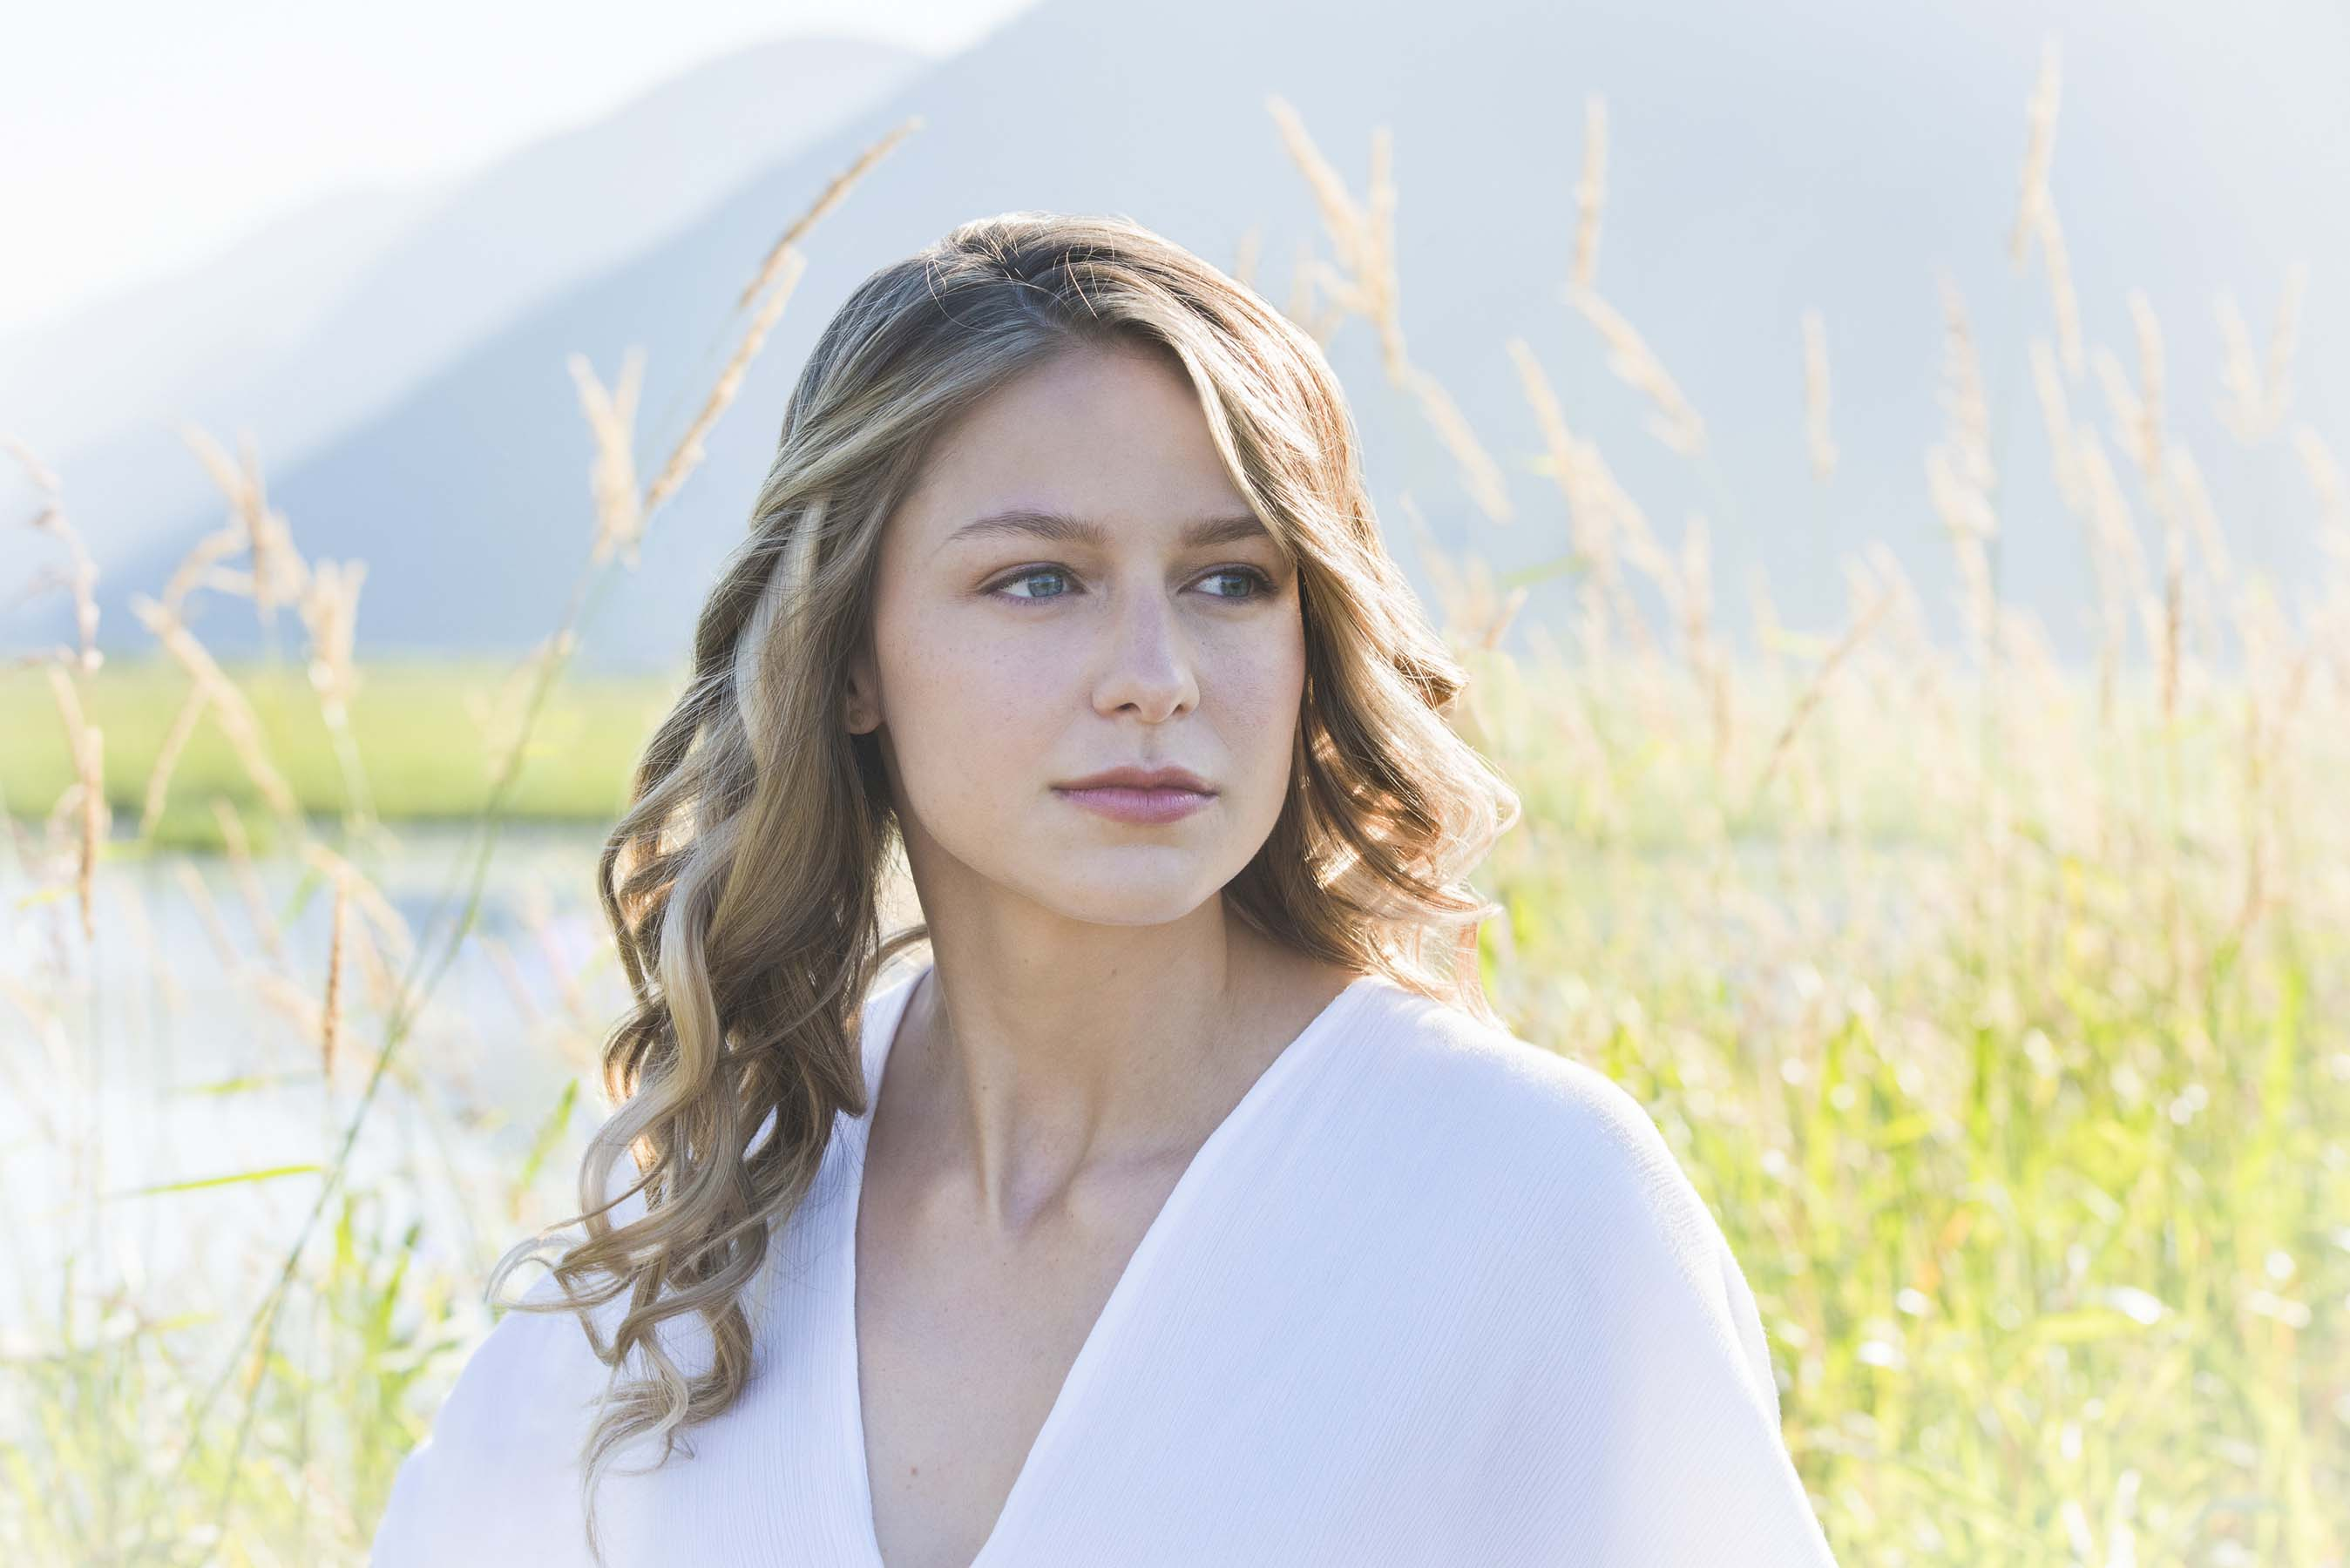 Supergirl season 3, episode 2 recap: Fear the psychic